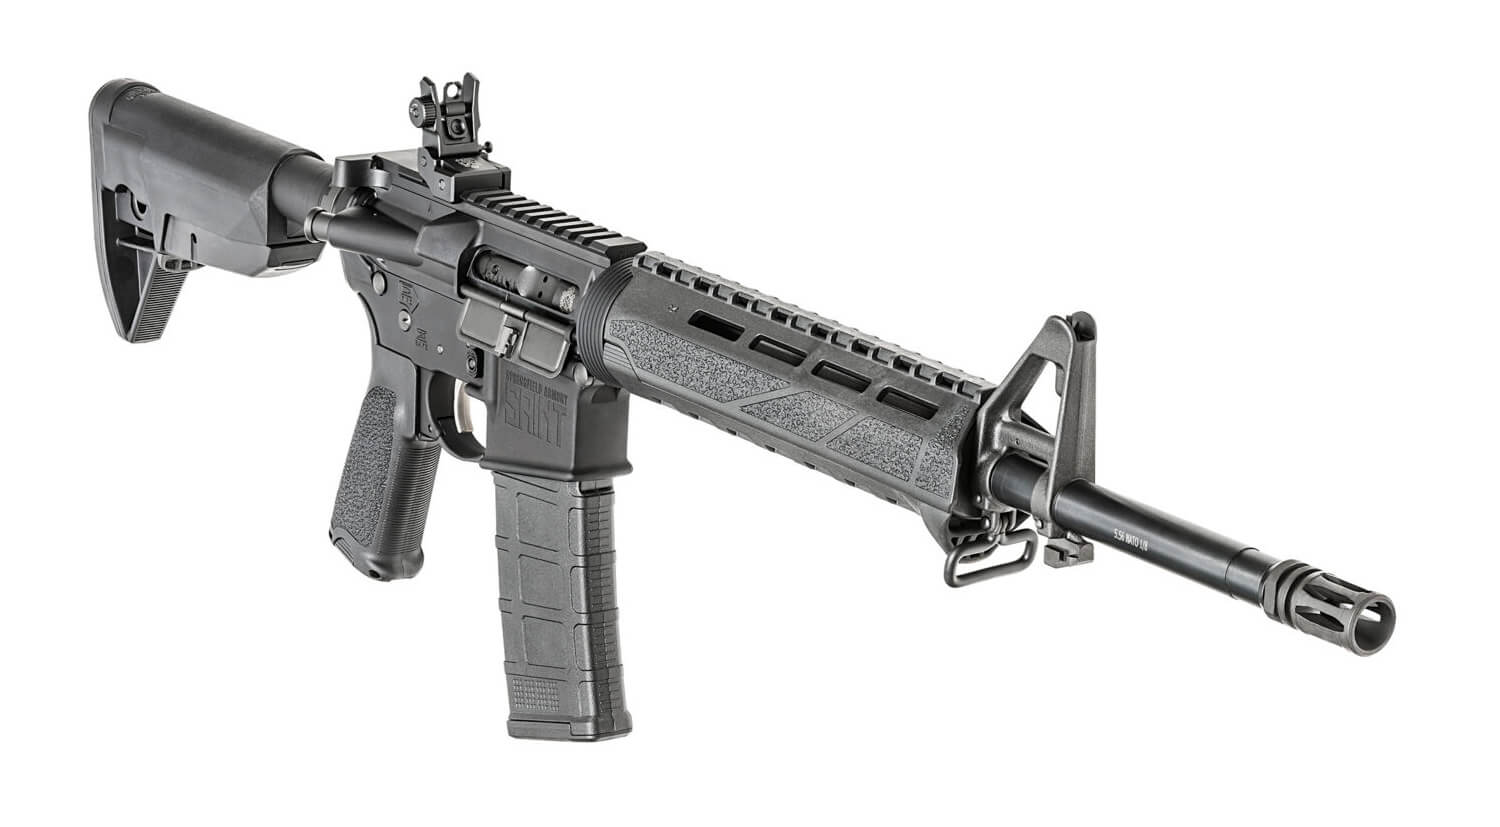 Springfield Armory SAINT rifle with a flash hider